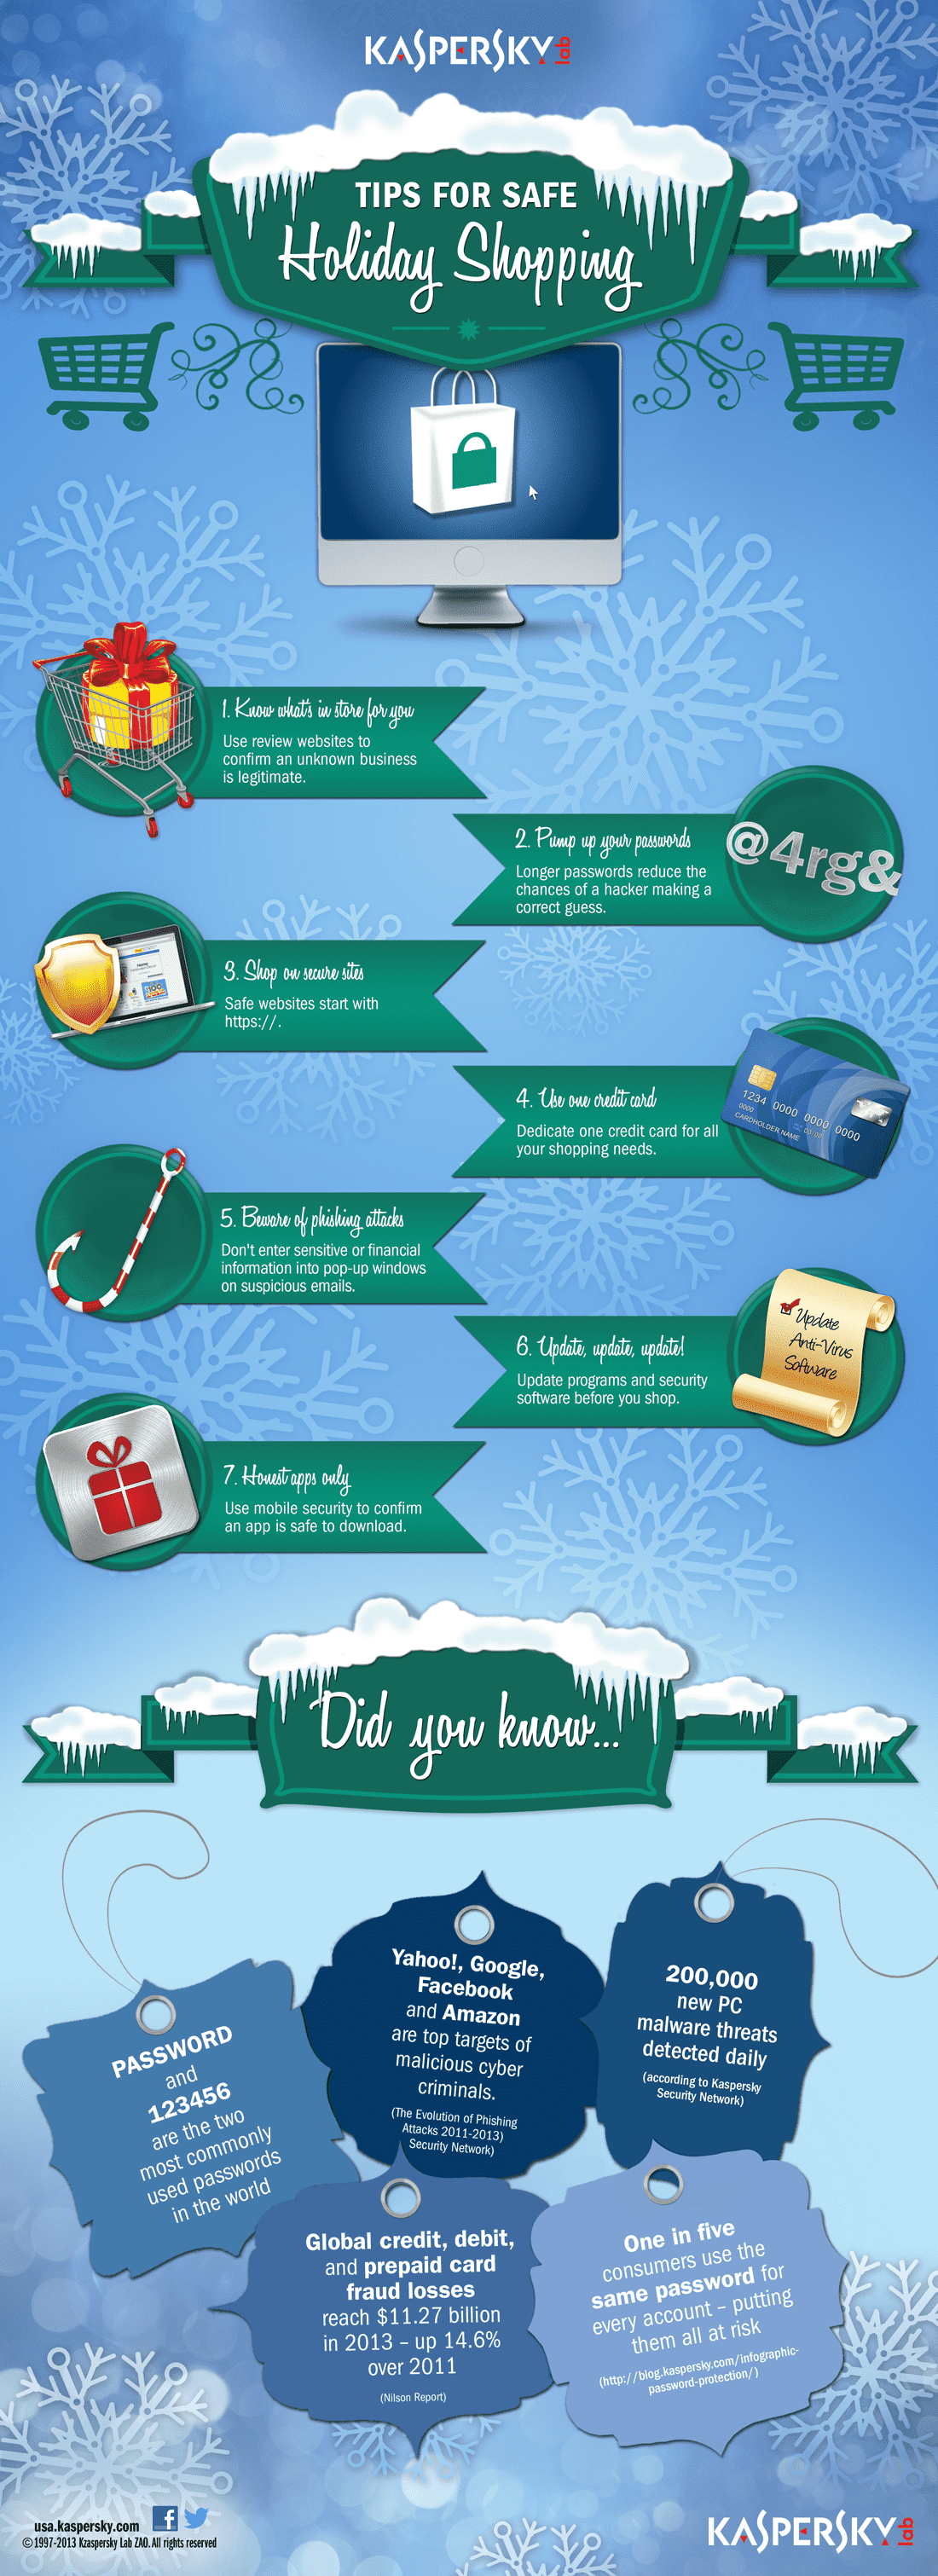 Infographic: Online Shopping Security Tips for the Holidays